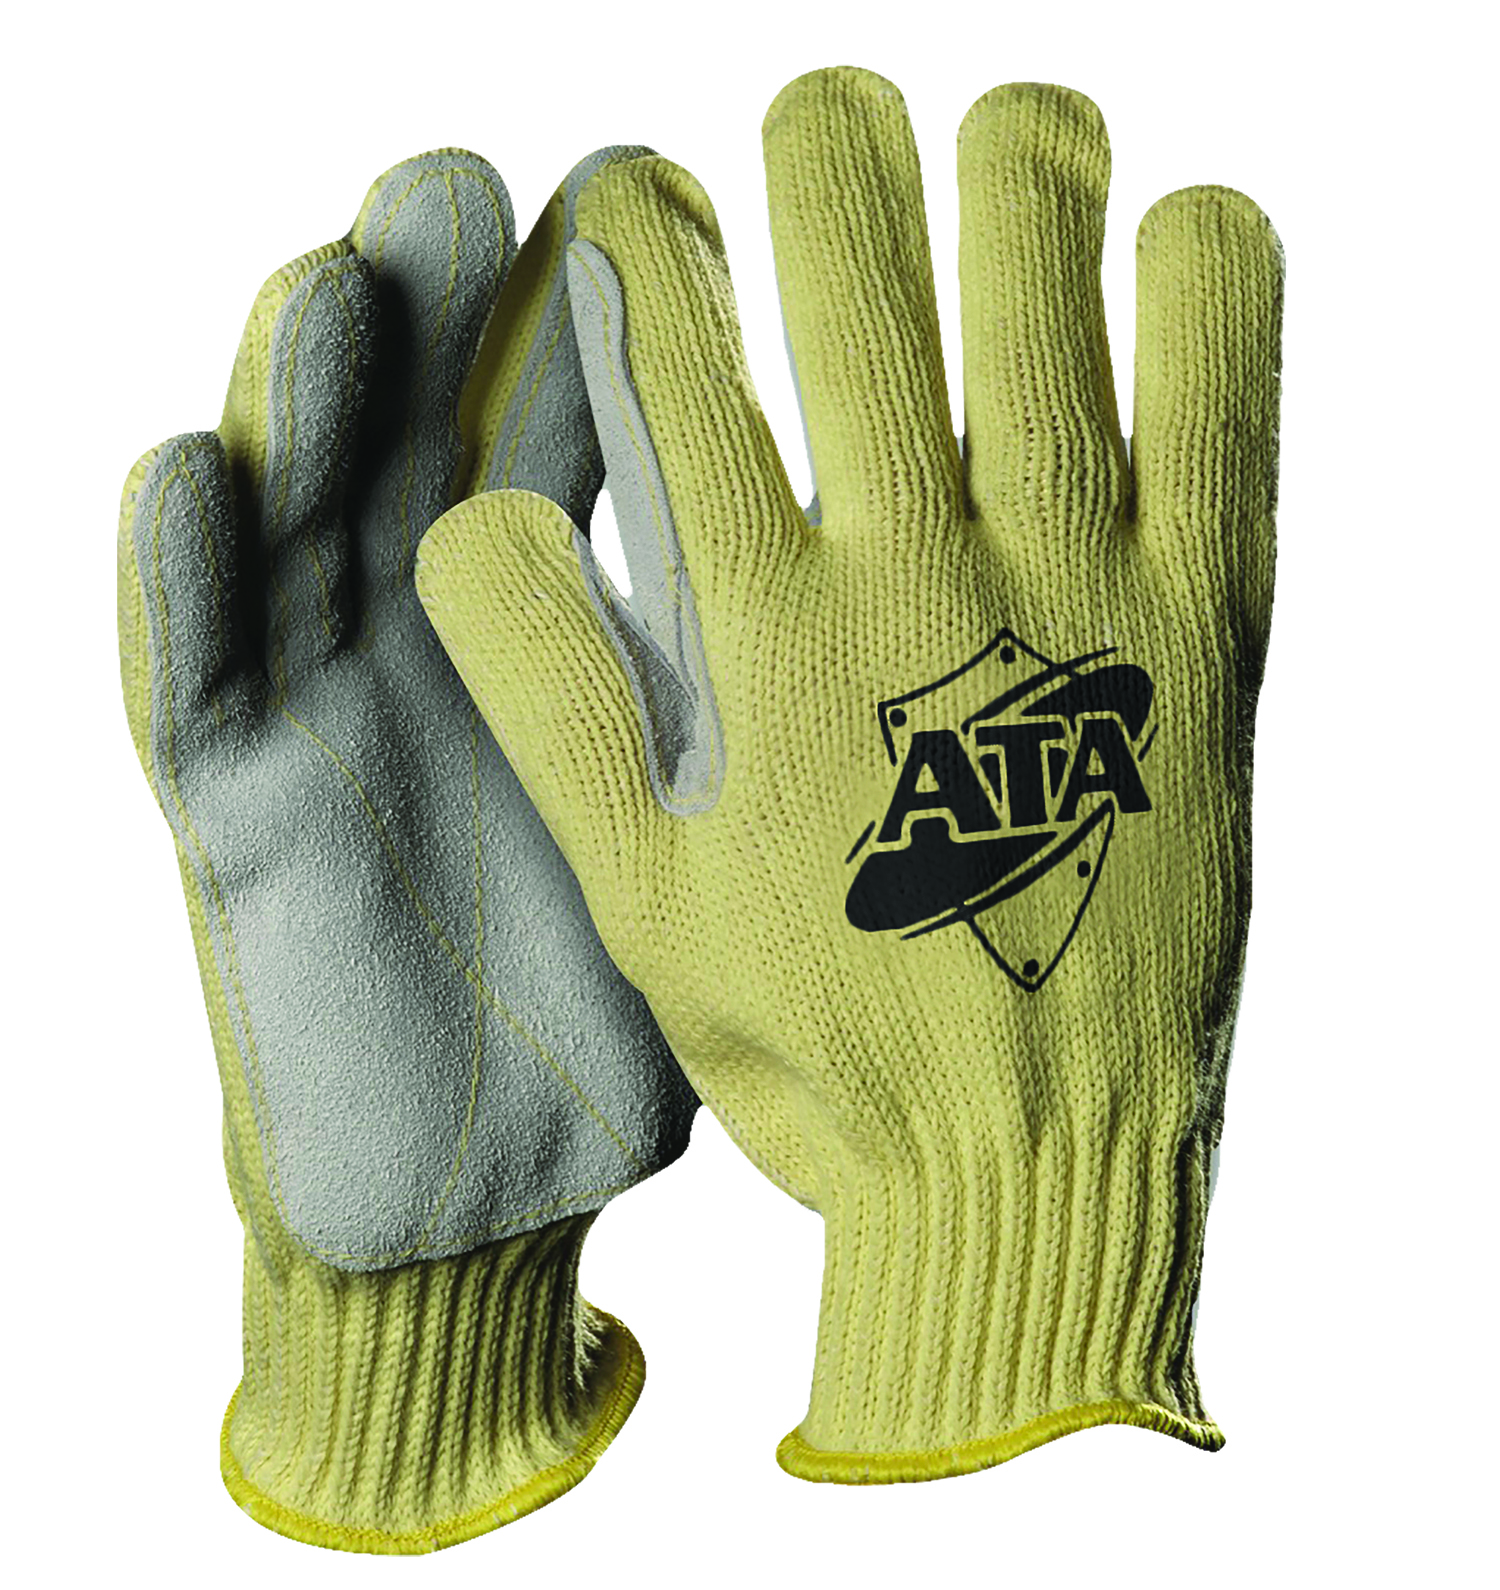 handprotection.mata30bh